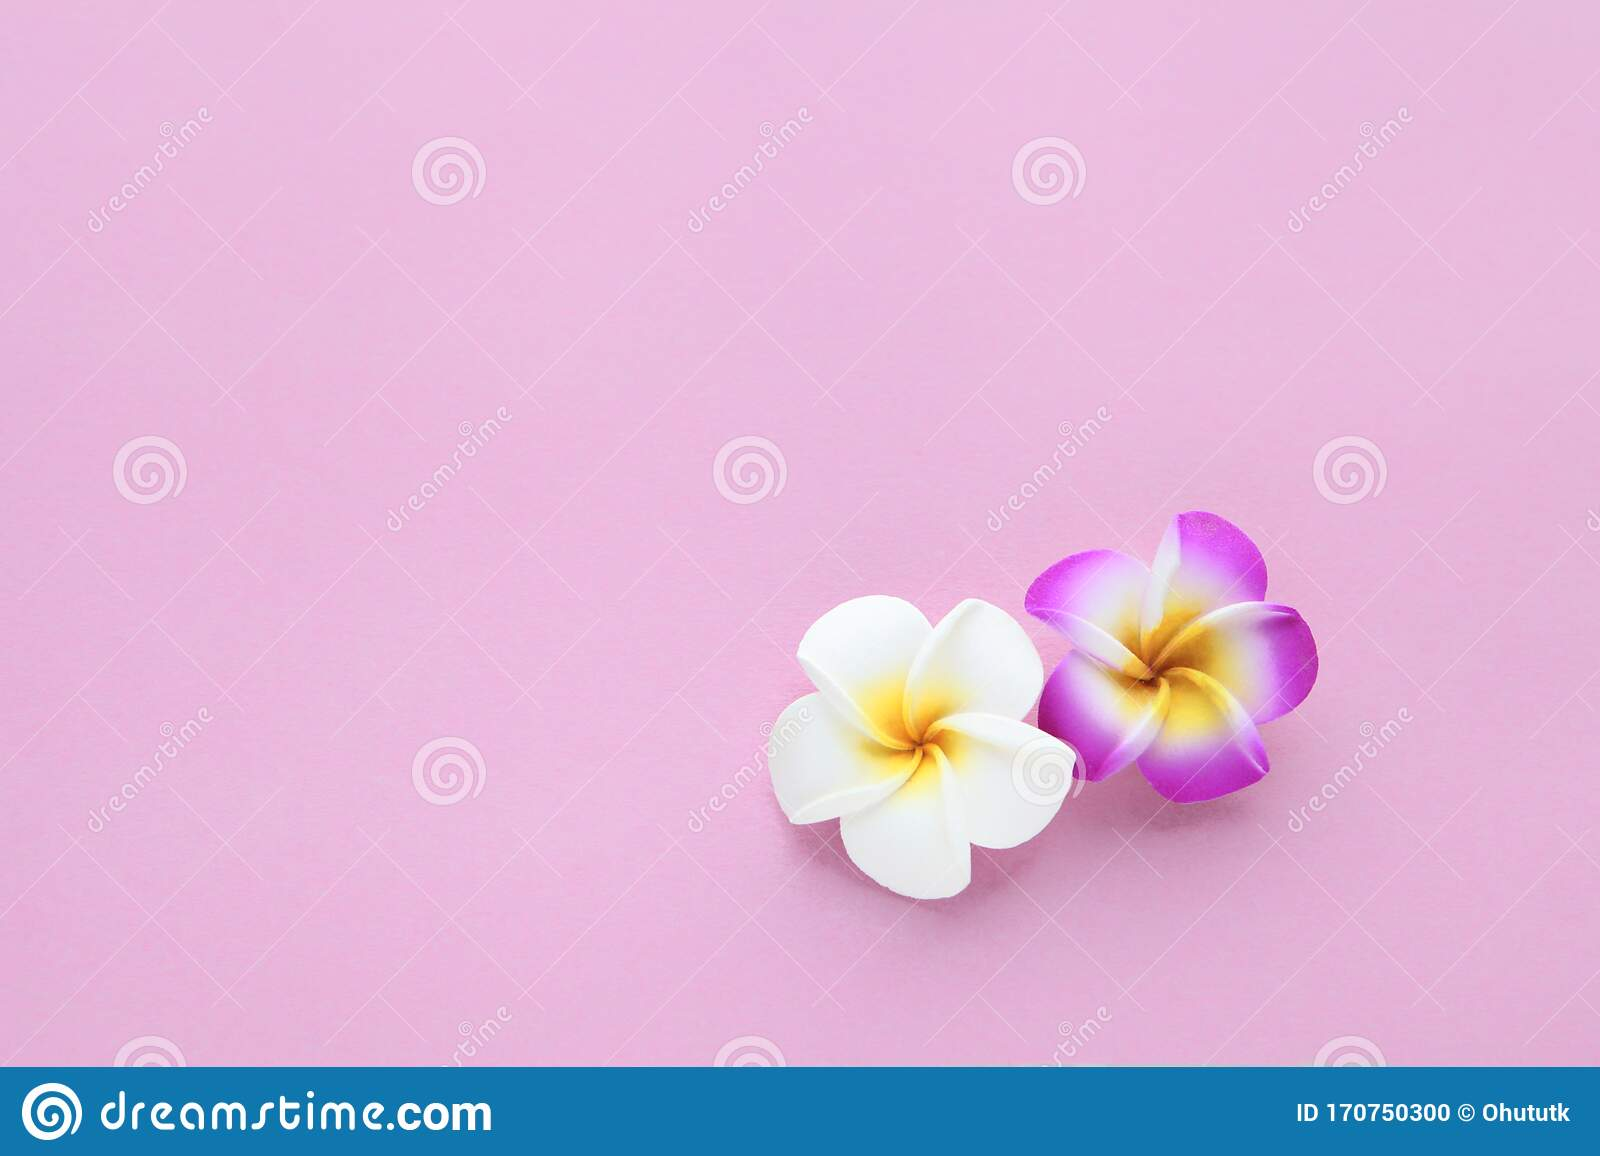 1 598 Plain Pink Backdrop Photos Free Royalty Free Stock Photos From Dreamstime